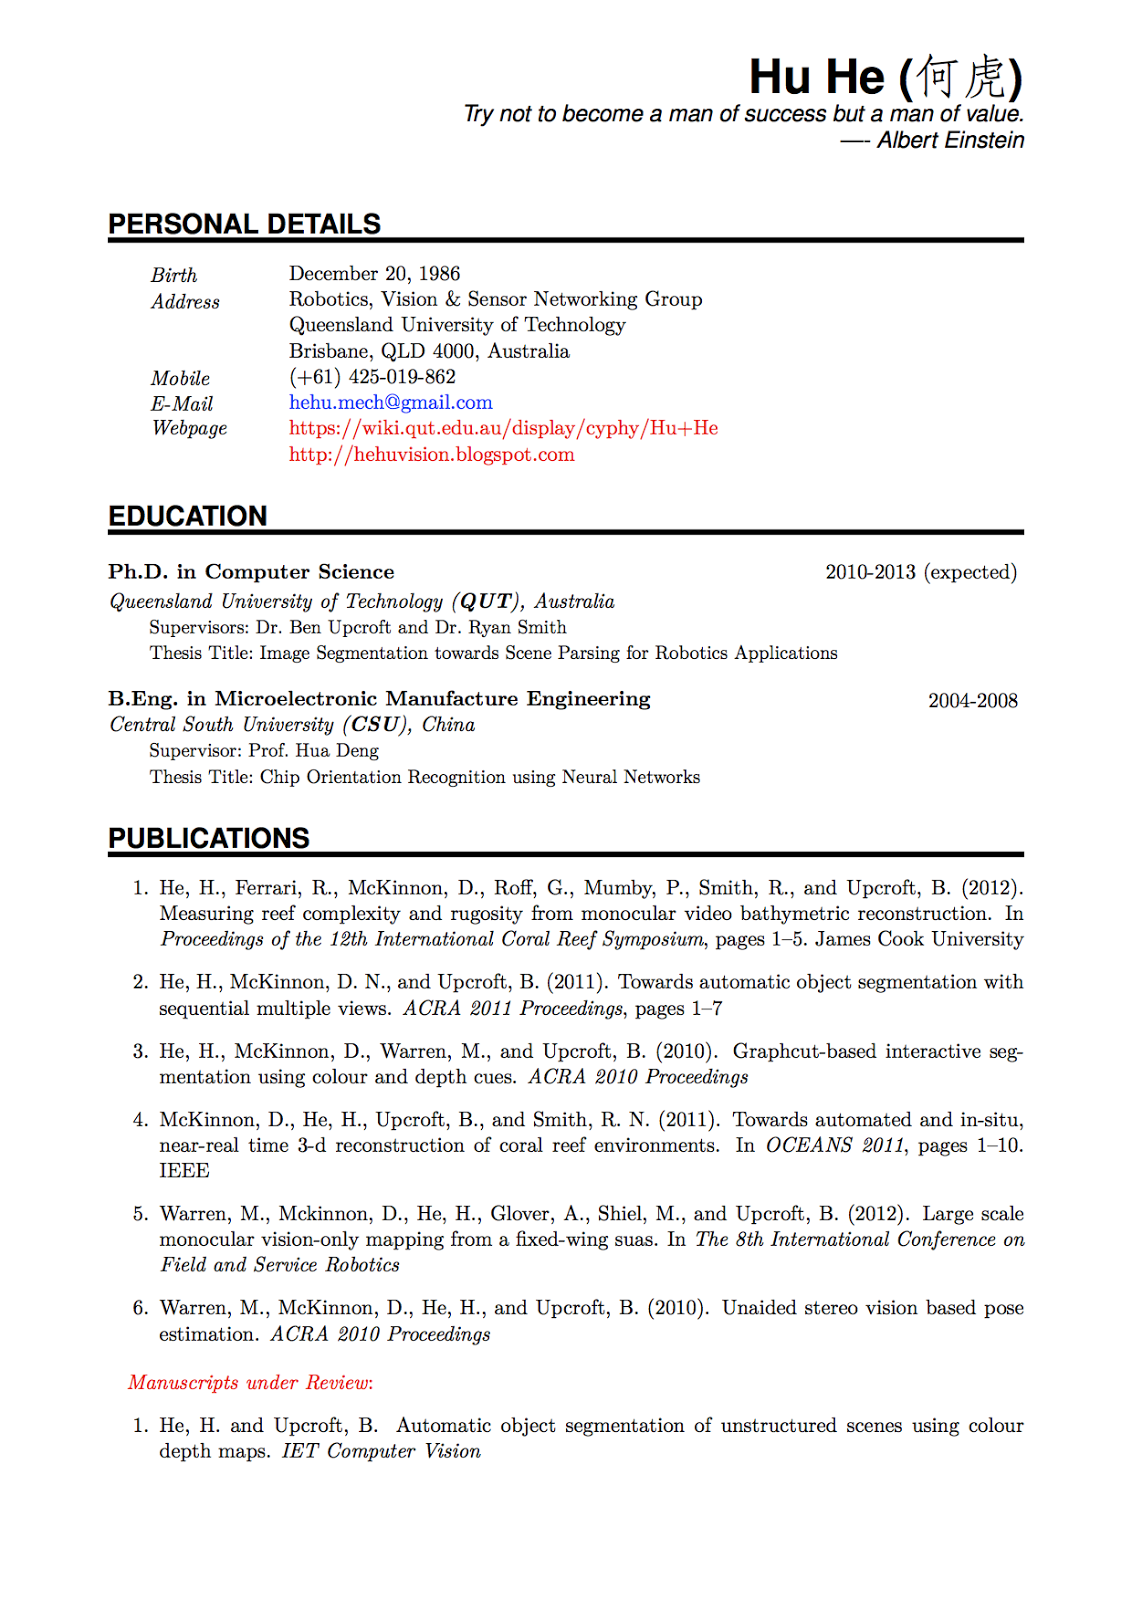 academic cv template latex